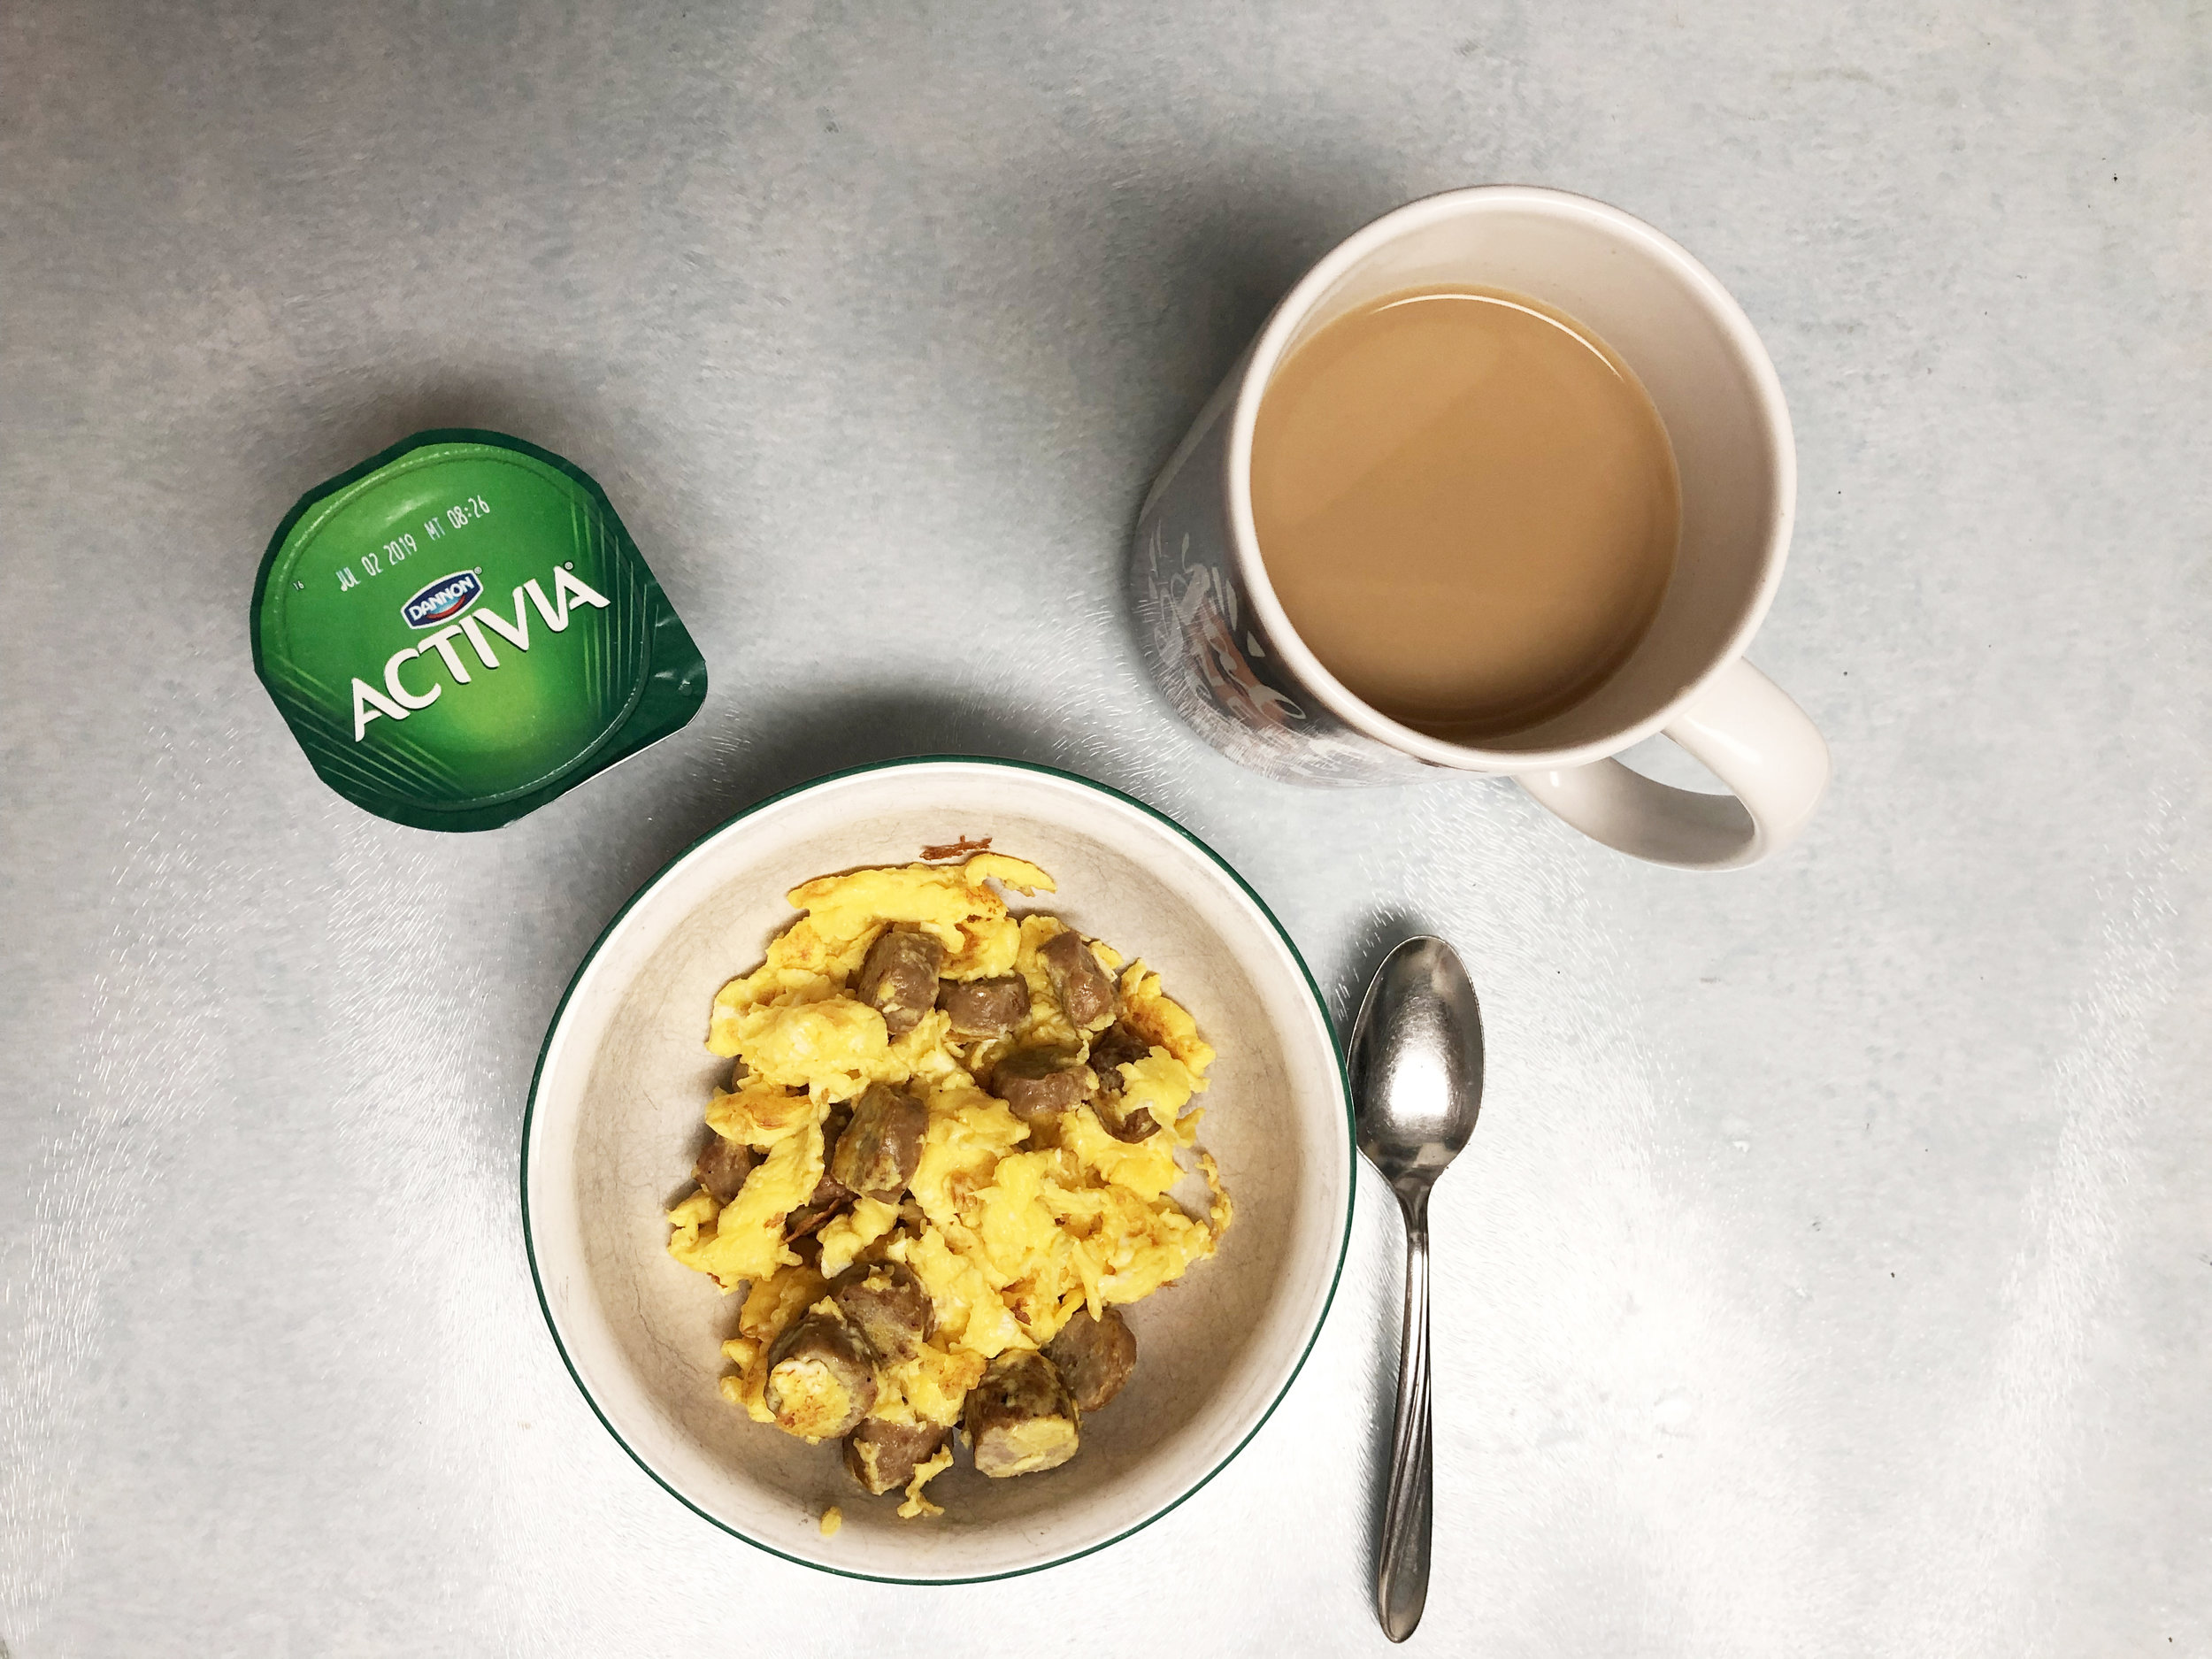 The eggs, Activia yogurt and coffee I have for breakfast.